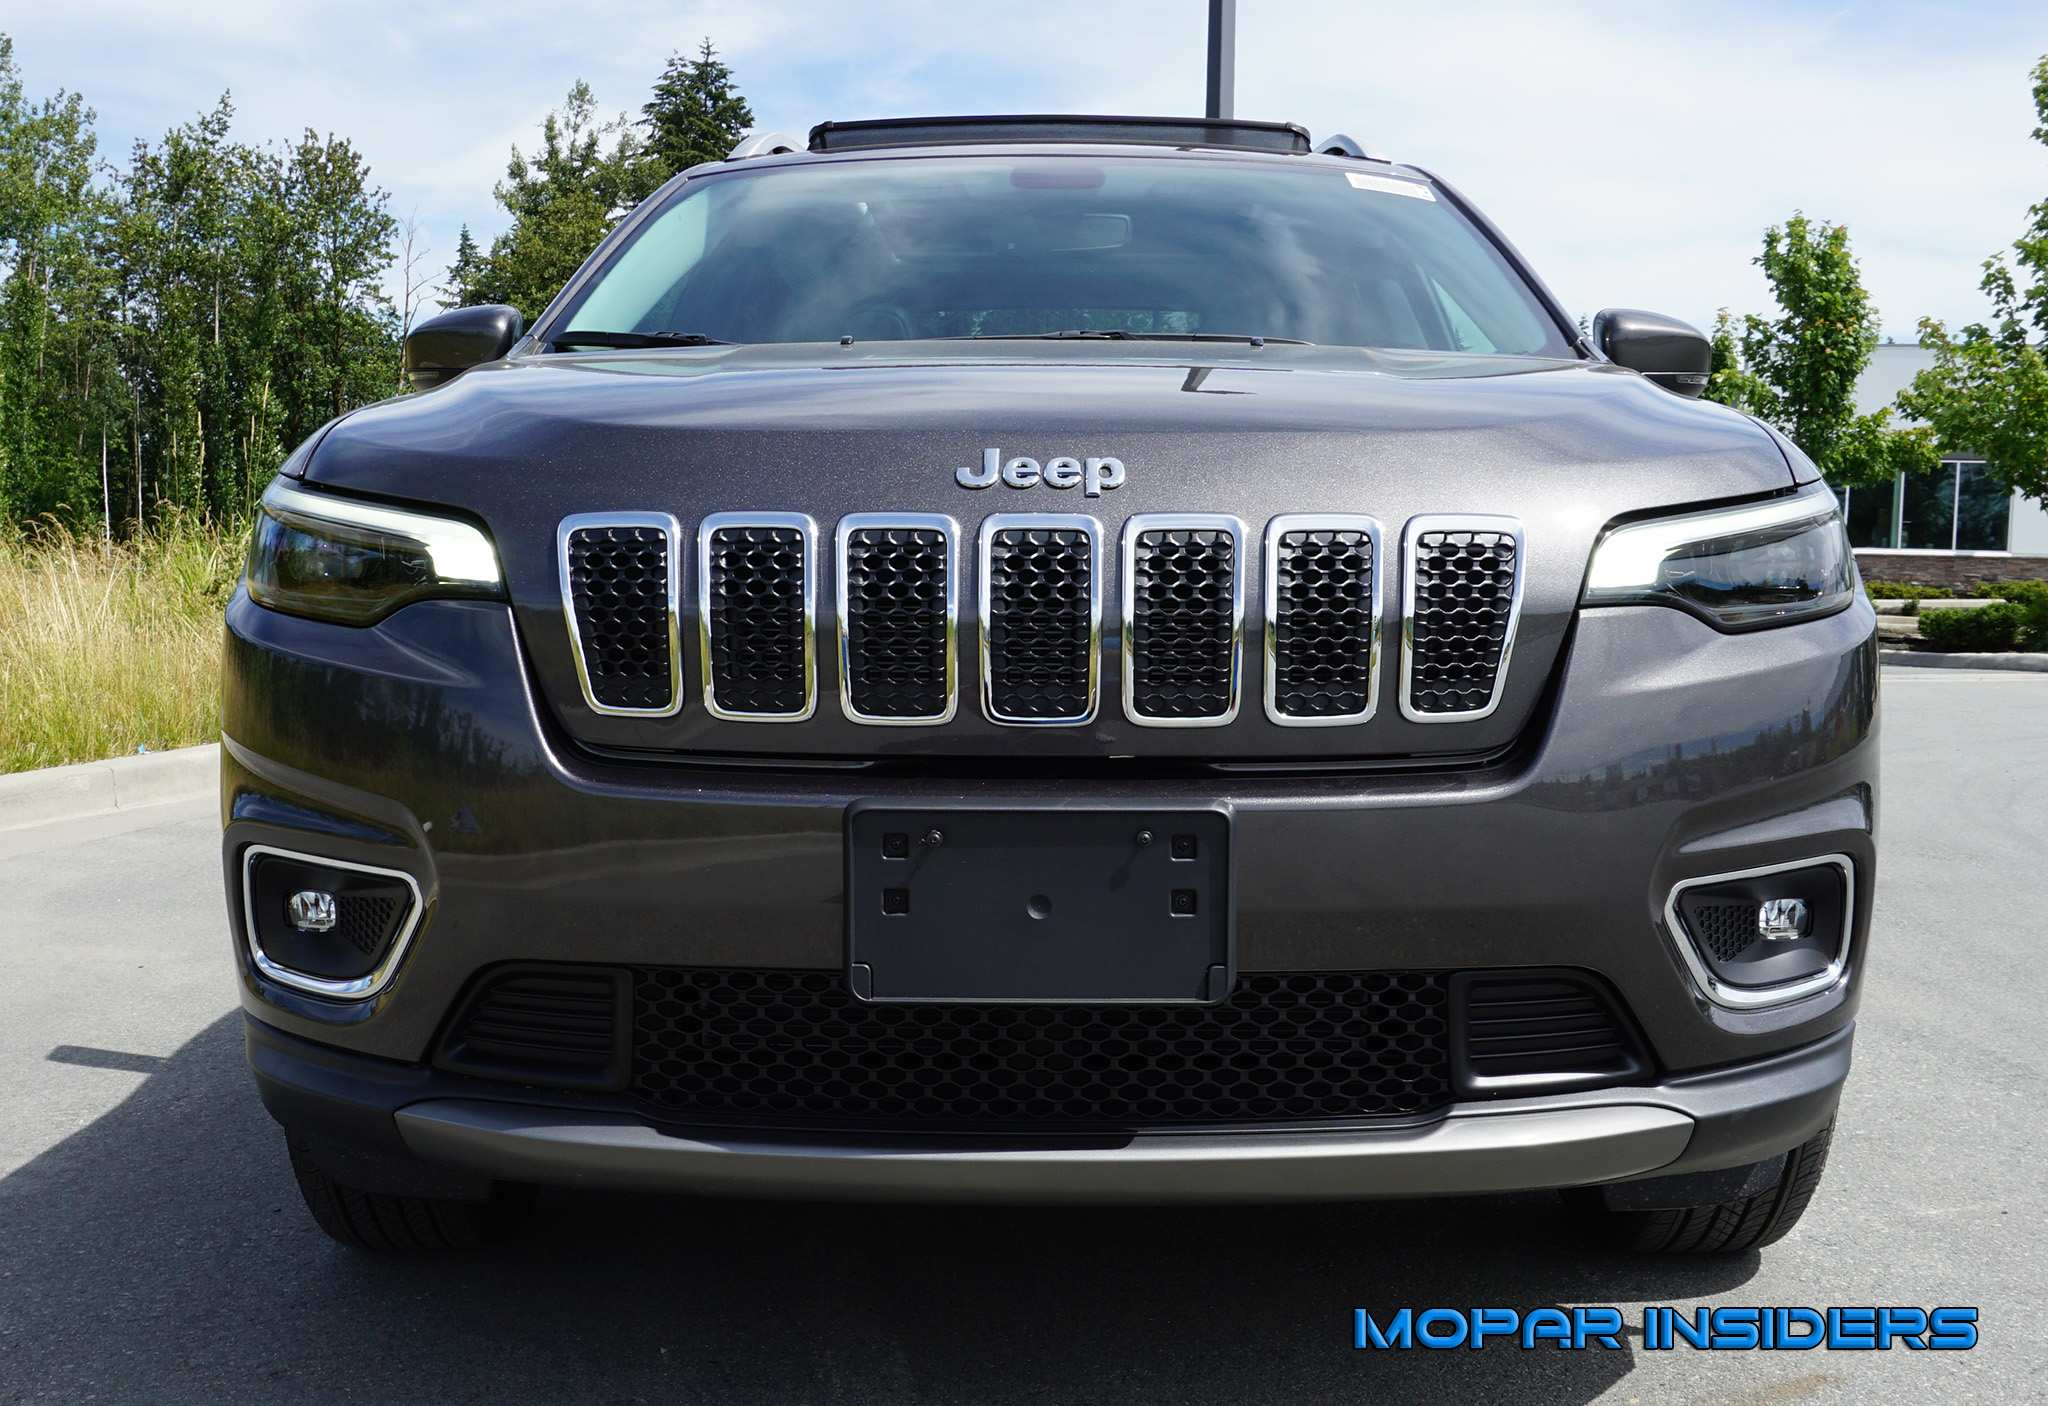 32 A 2019 Jeep 2 0 Turbo Mpg Research New